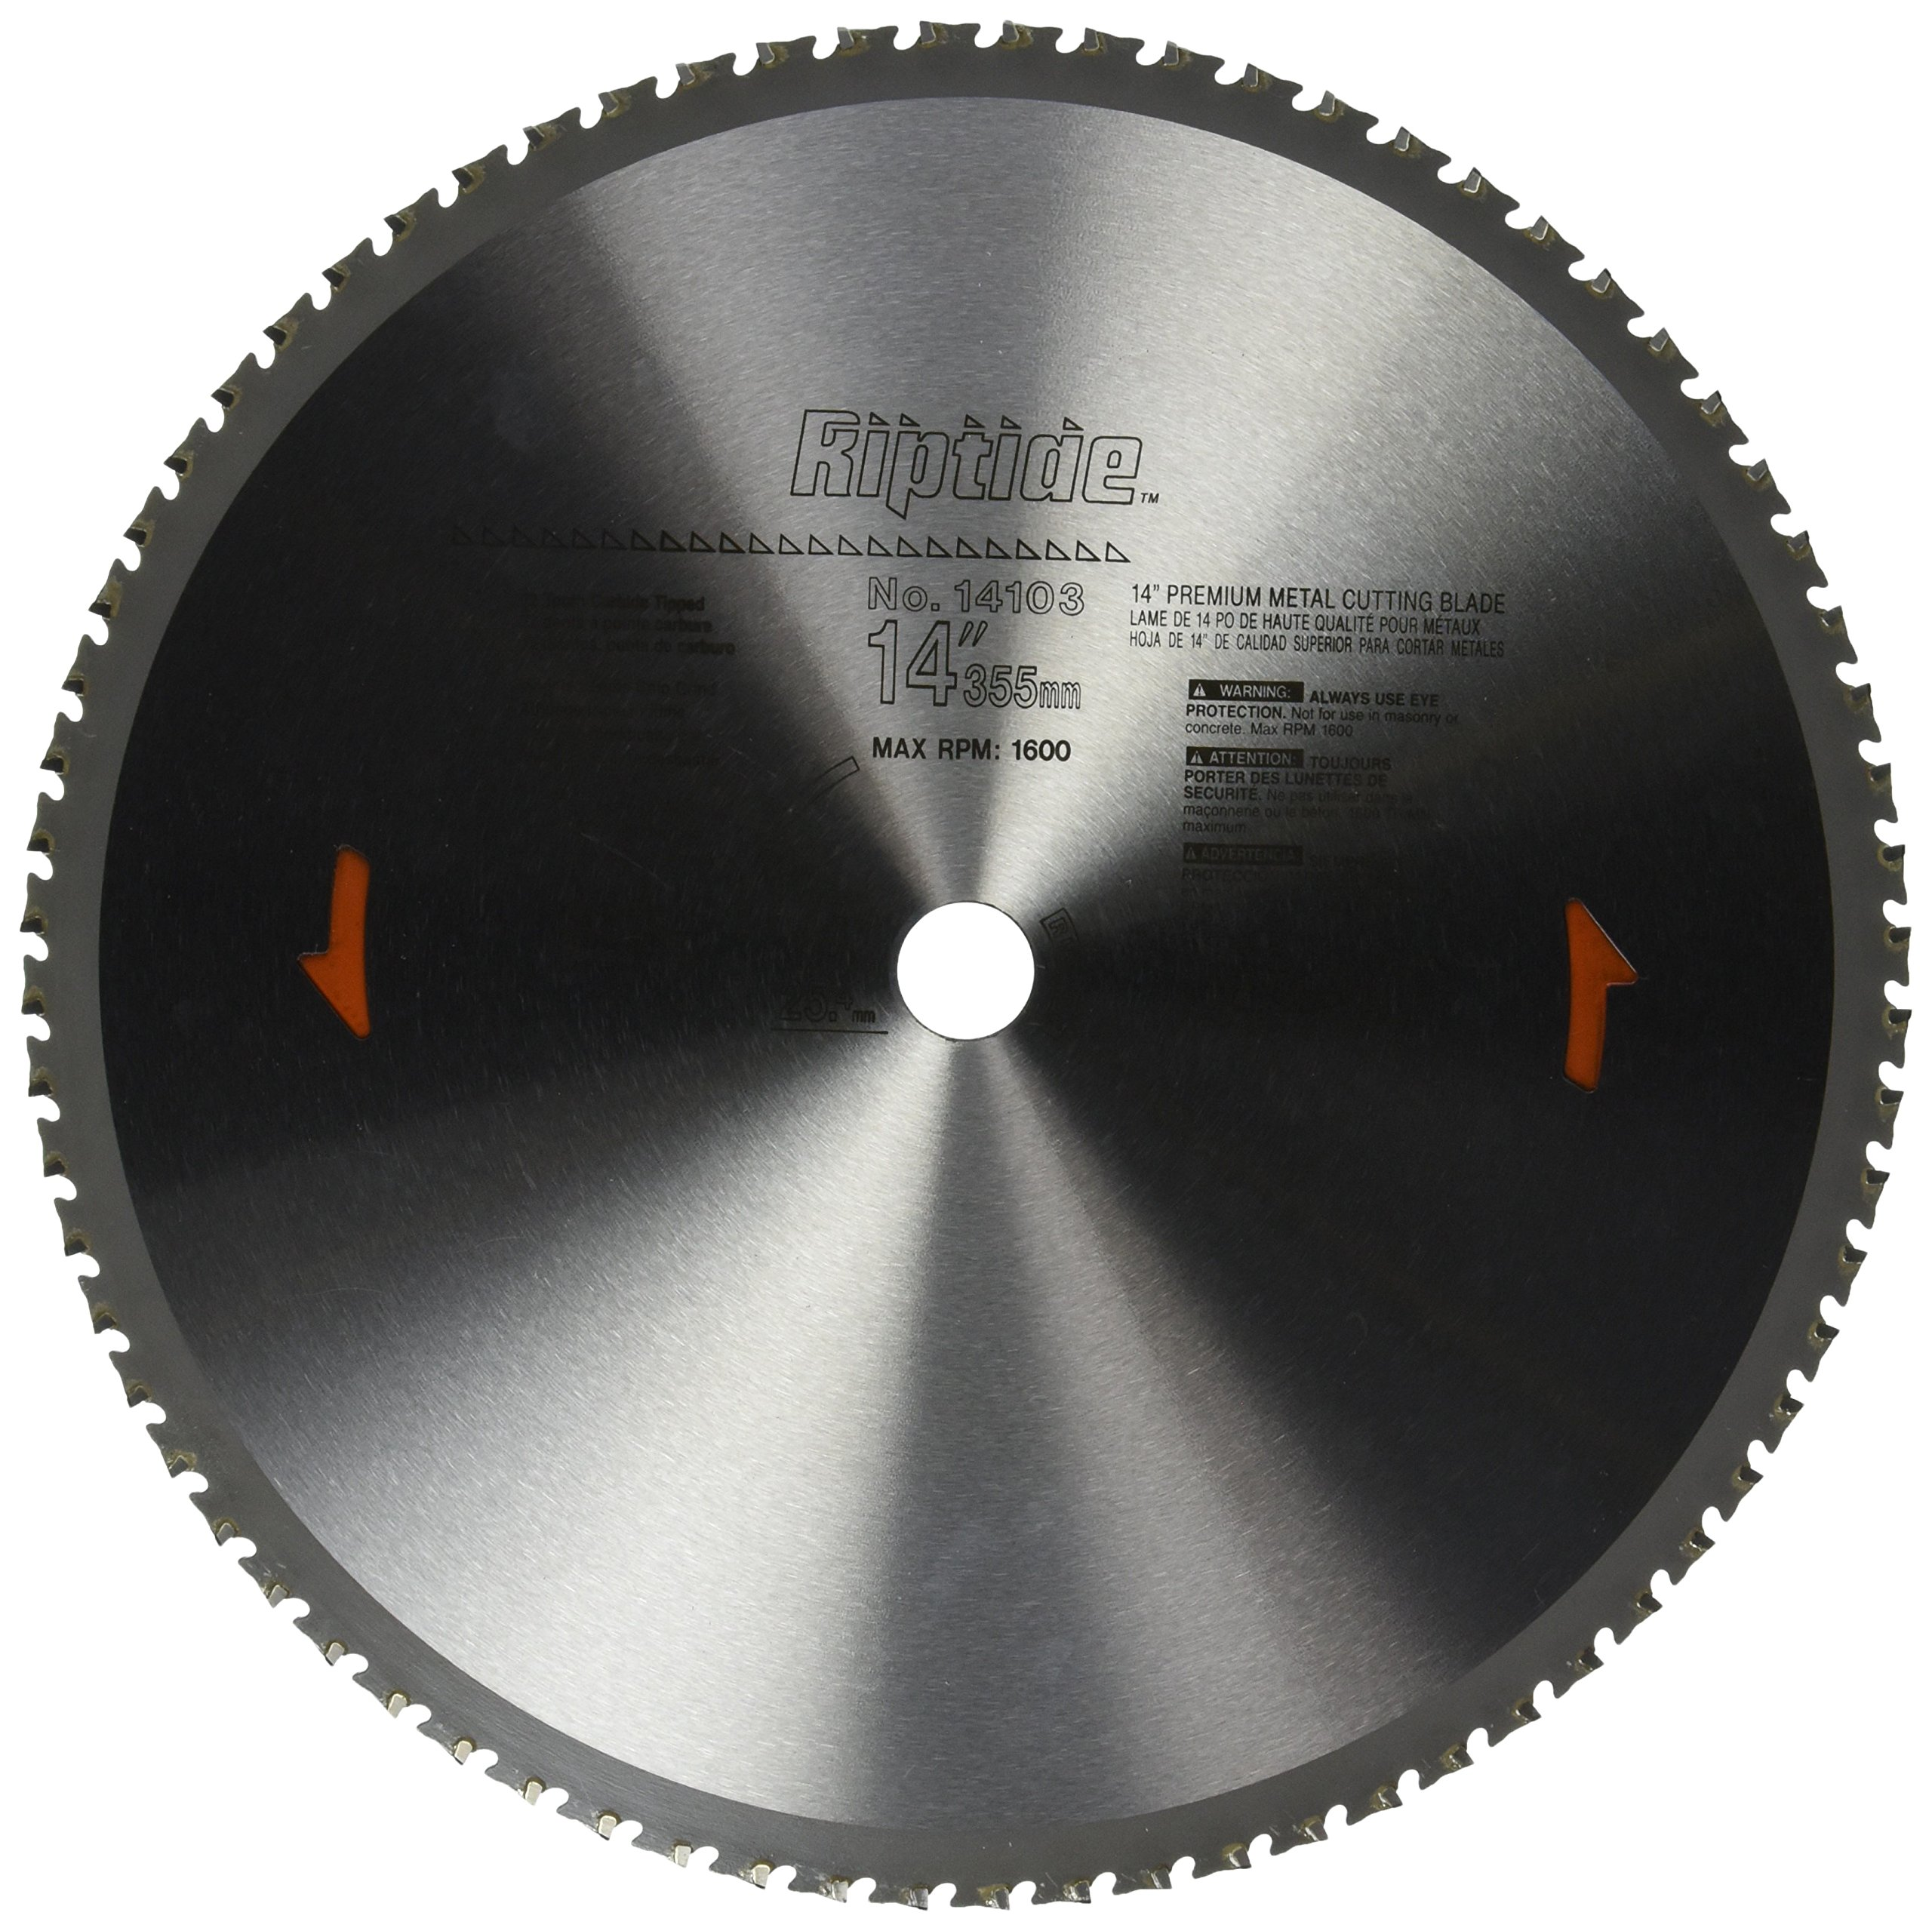 PORTER-CABLE 14103 14-Inch 72 Tooth Metal Cutting Saw Blade with 1-Inch Arbor by PORTER-CABLE